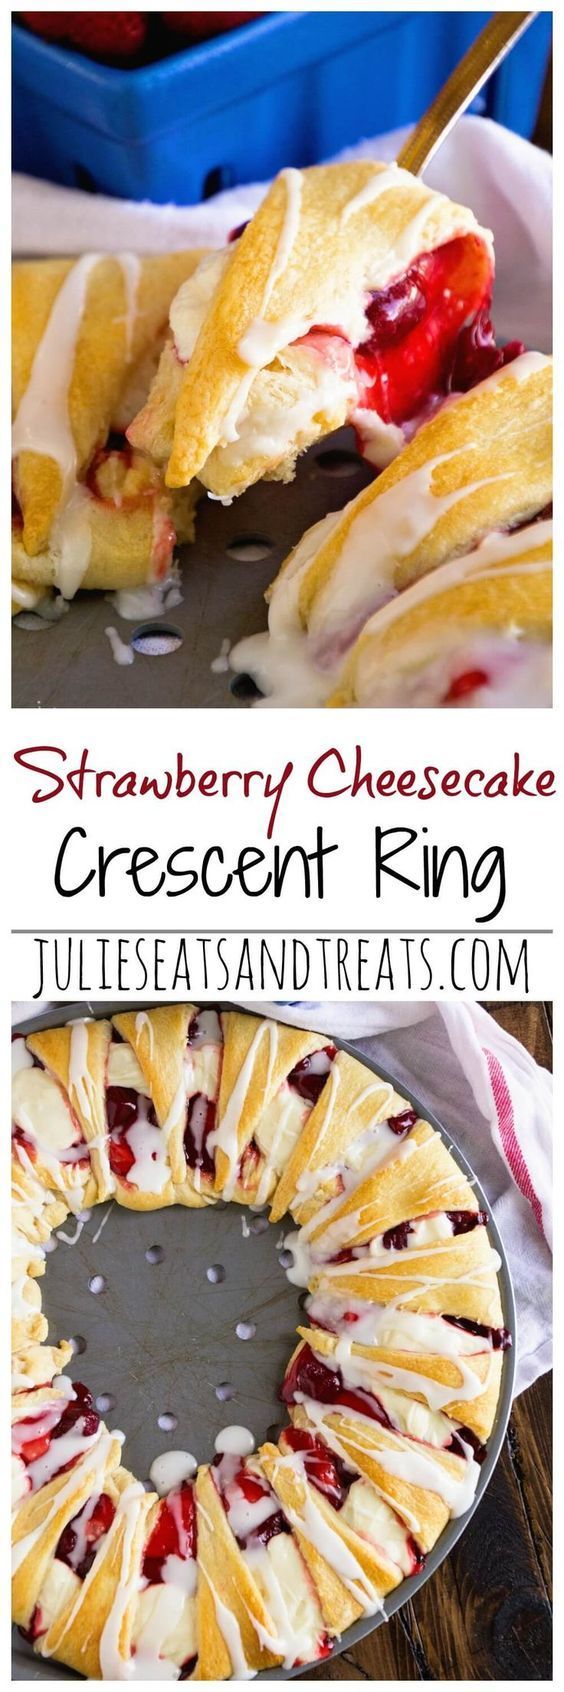 Strawberry Cheesecake Crescent Ring ~ Tender Flaky Crescent Rolls Stuffed with Strawberry Pie Filling and Cheesecake then Drizzled with Icing! Perfect Quick and Easy Breakfast Recipe!Strawberry Cheesecake Crescent Ring ~ Tender Flaky Crescent Rolls Stuffed with Strawberry Pie Filling and Cheesecake then Drizzled with Icing! Perfect Quick and Easy Breakfast Recipe!Lucky Leaf